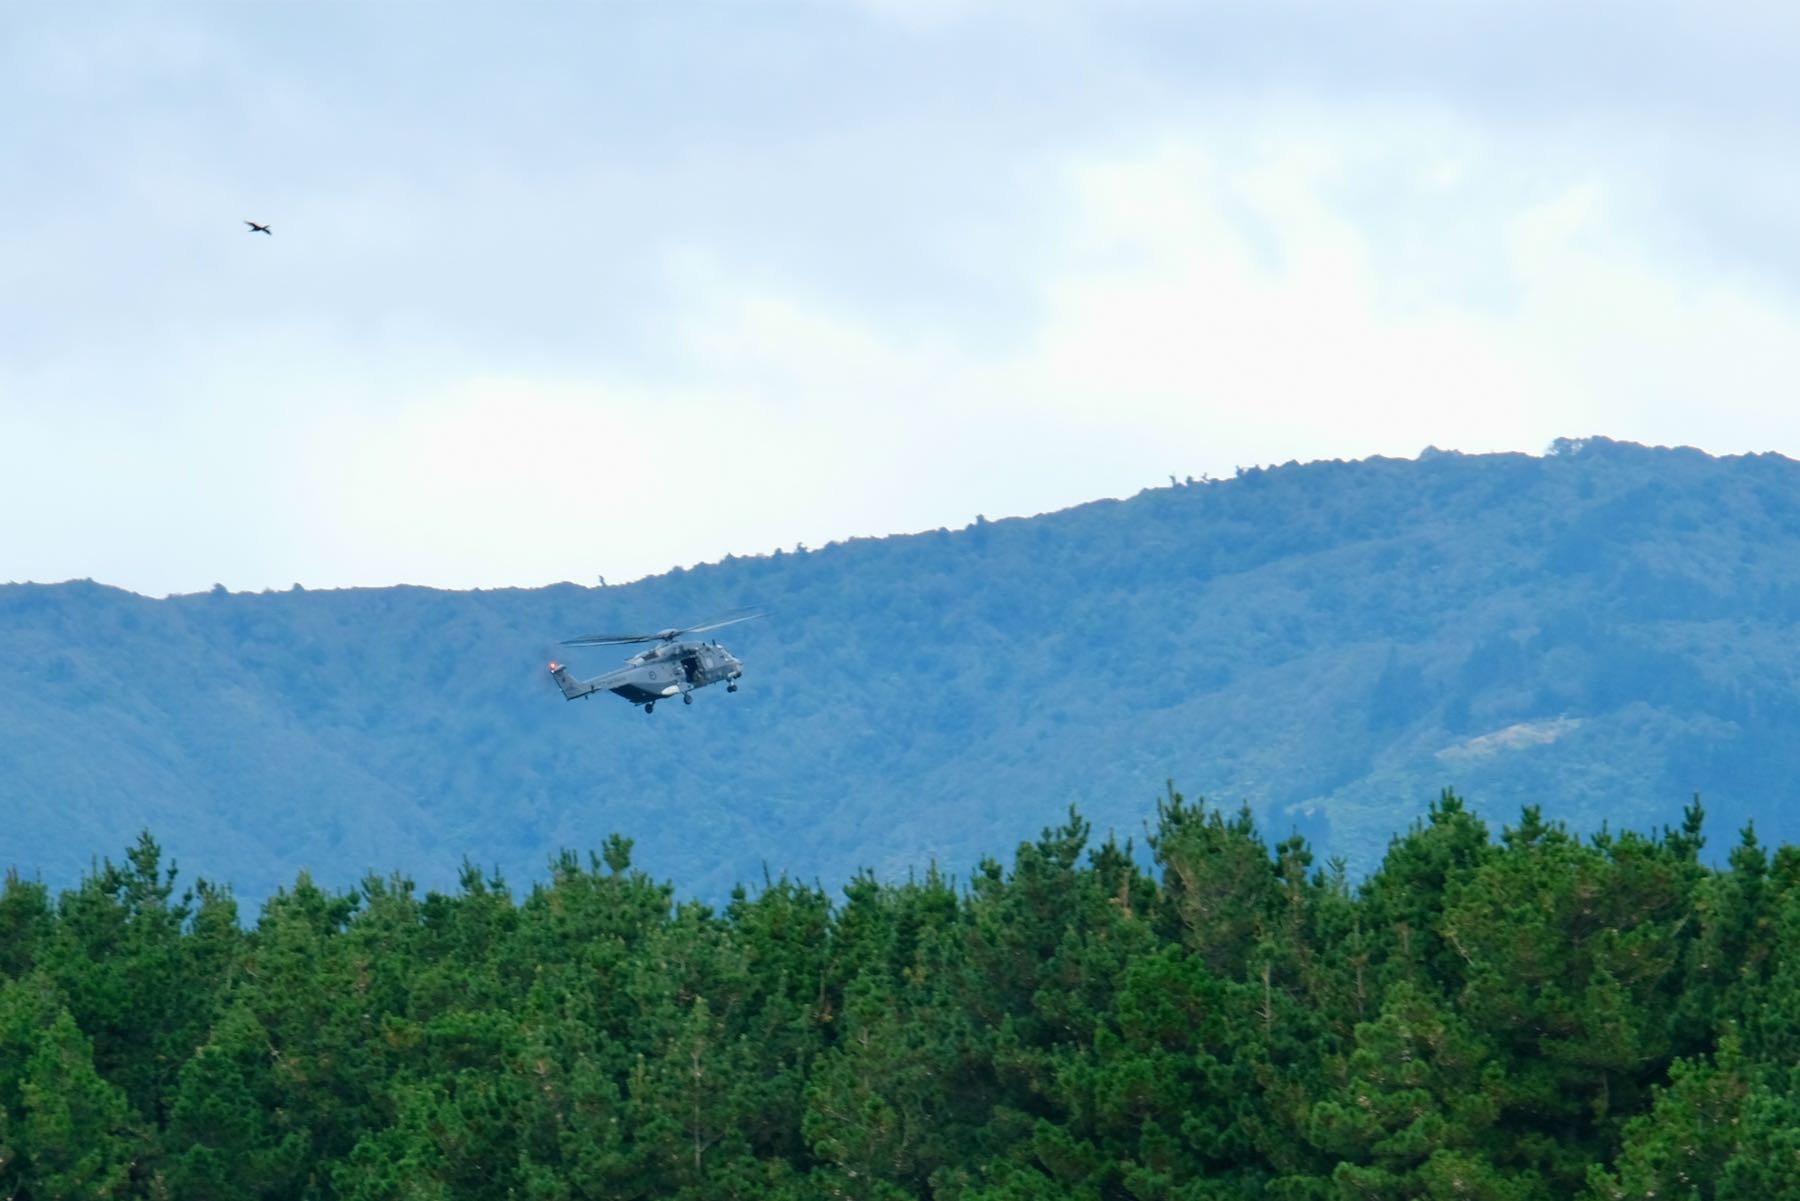 Comparative closeup of AIr Force helicopter hovering above trees.